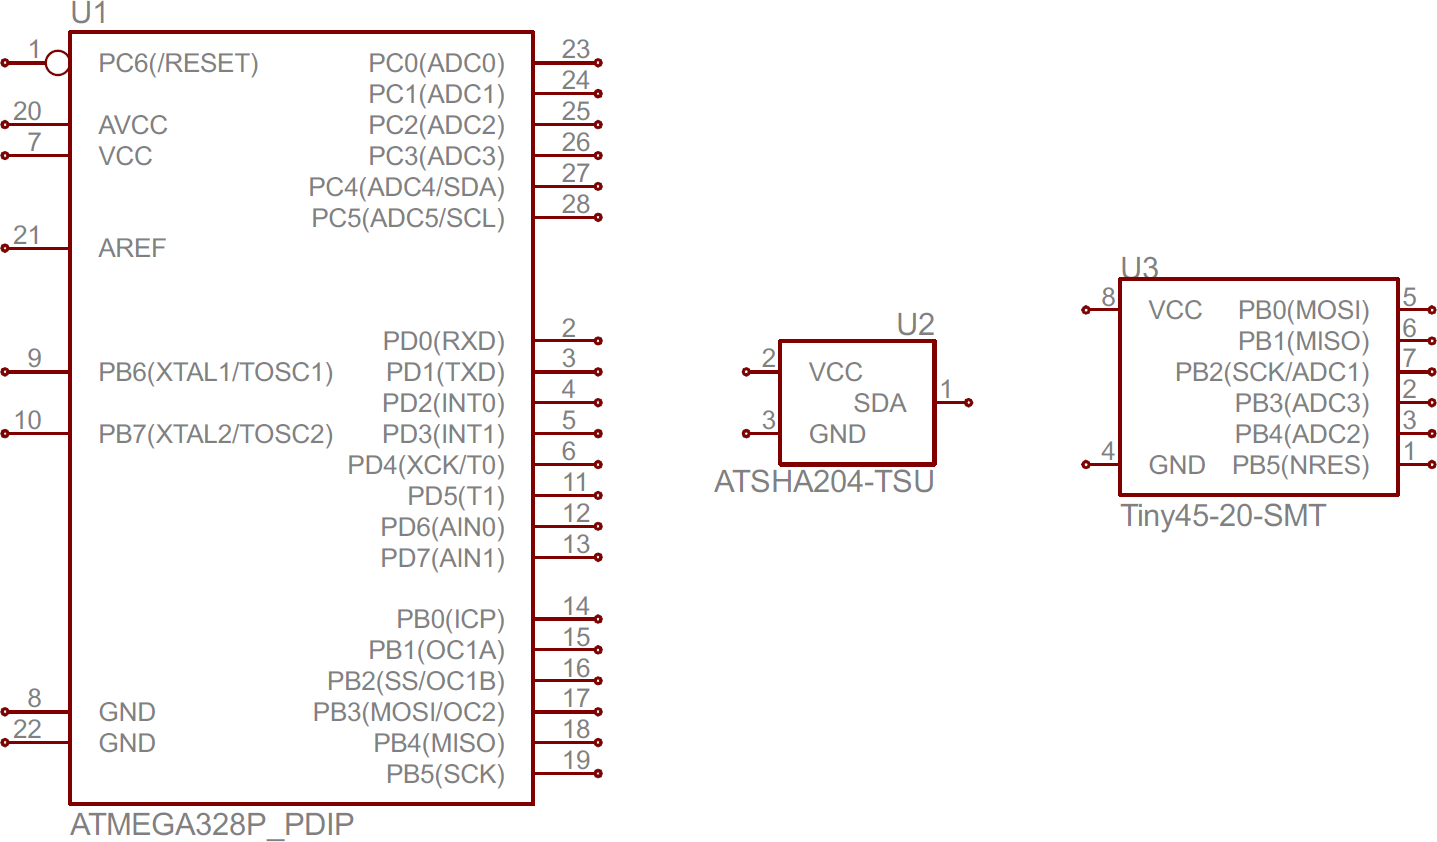 How To Read A Schematic Motor Schematics Atmega328 Atsha204 And Attiny45 Ic Symbols